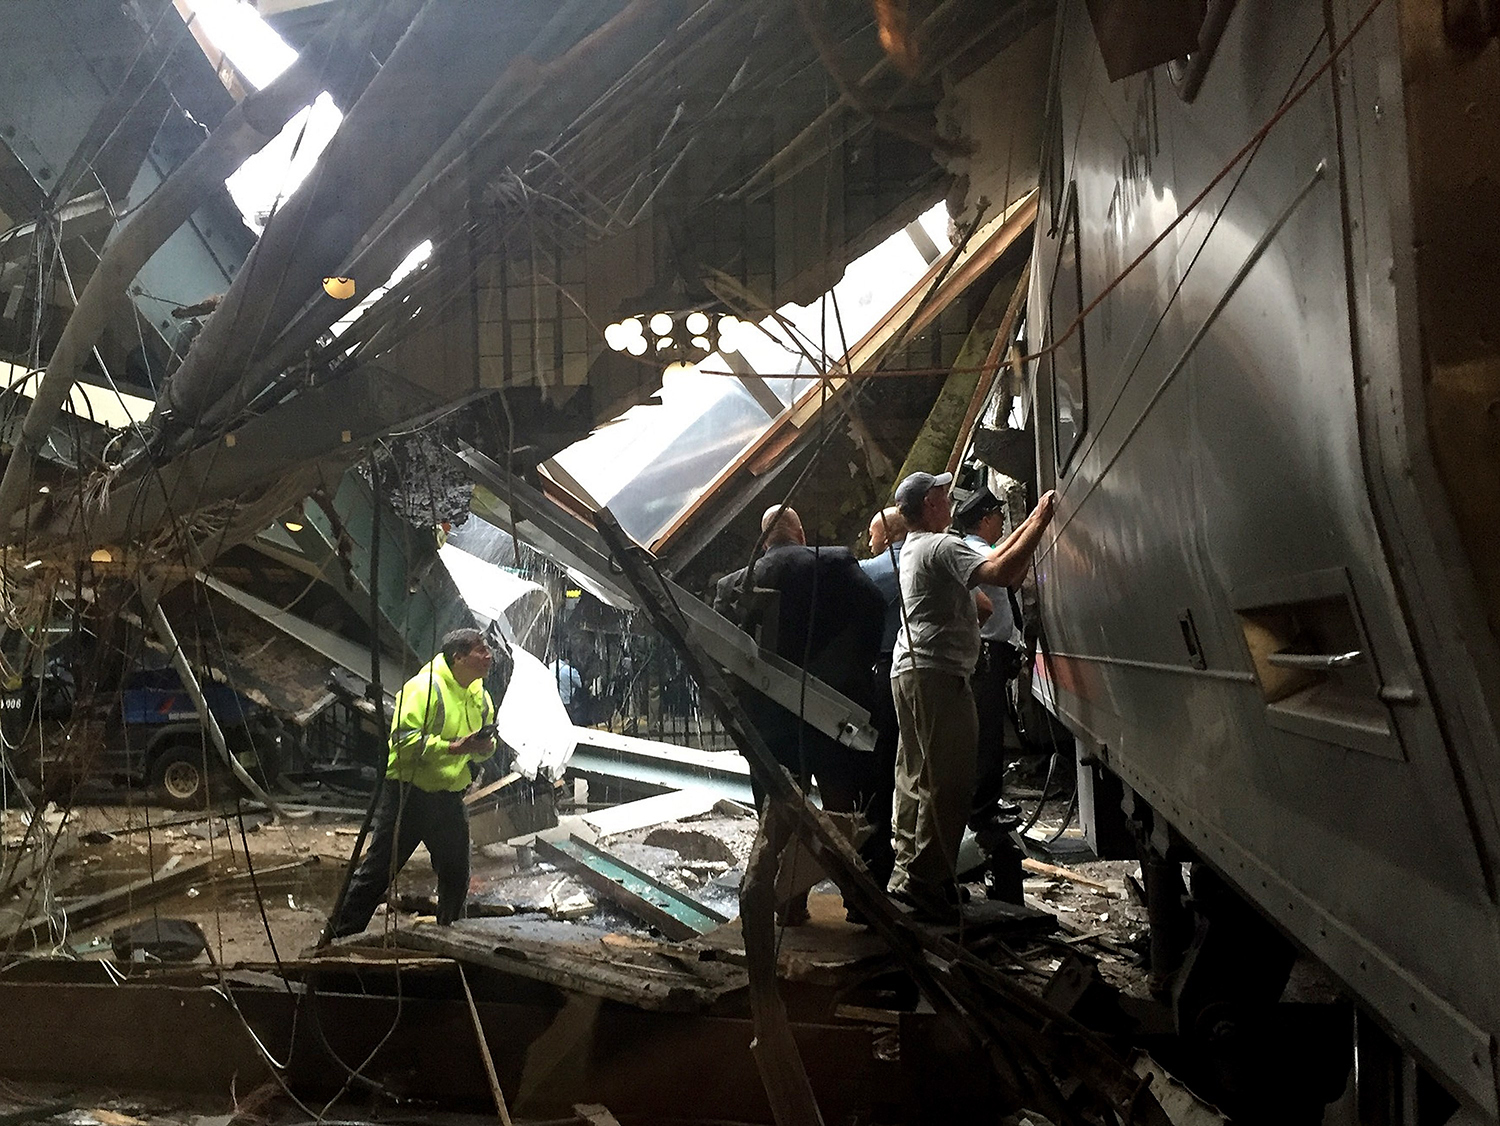 HOBOKEN, NJ - SEPTEMBER 29: Train personel survey the NJ Transit train that crashed in to the platform at the Hoboken Terminal September 29, 2016 in Hoboken, New Jersey. Pancho Bernasconi/Getty Images/AFP == FOR NEWSPAPERS, INTERNET, TELCOS & TELEVISION USE ONLY == / TT / kod 444